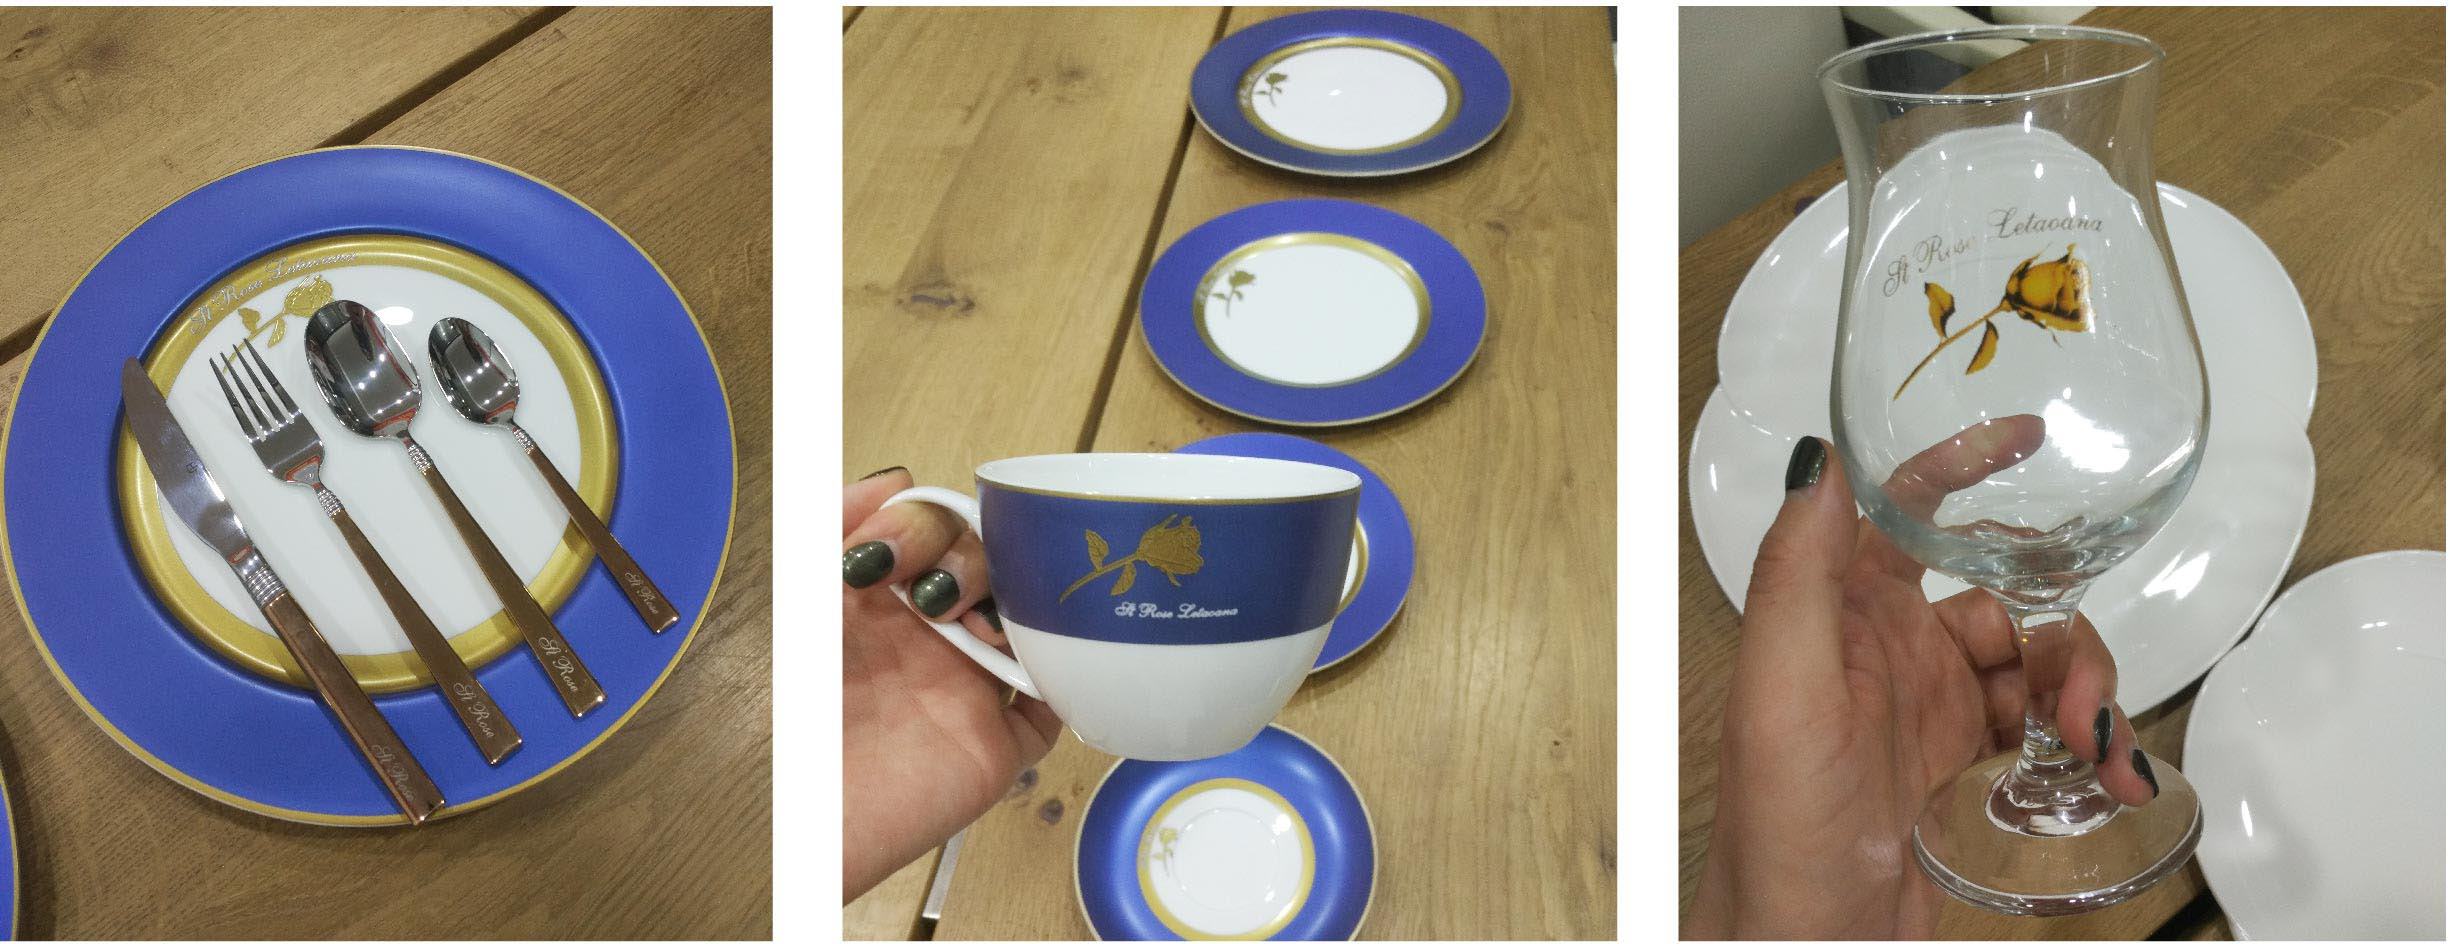 Two Eight-The Story of Gold Rose With Blue Rim on the ceramic dinnerware set - dinnerware designing-8